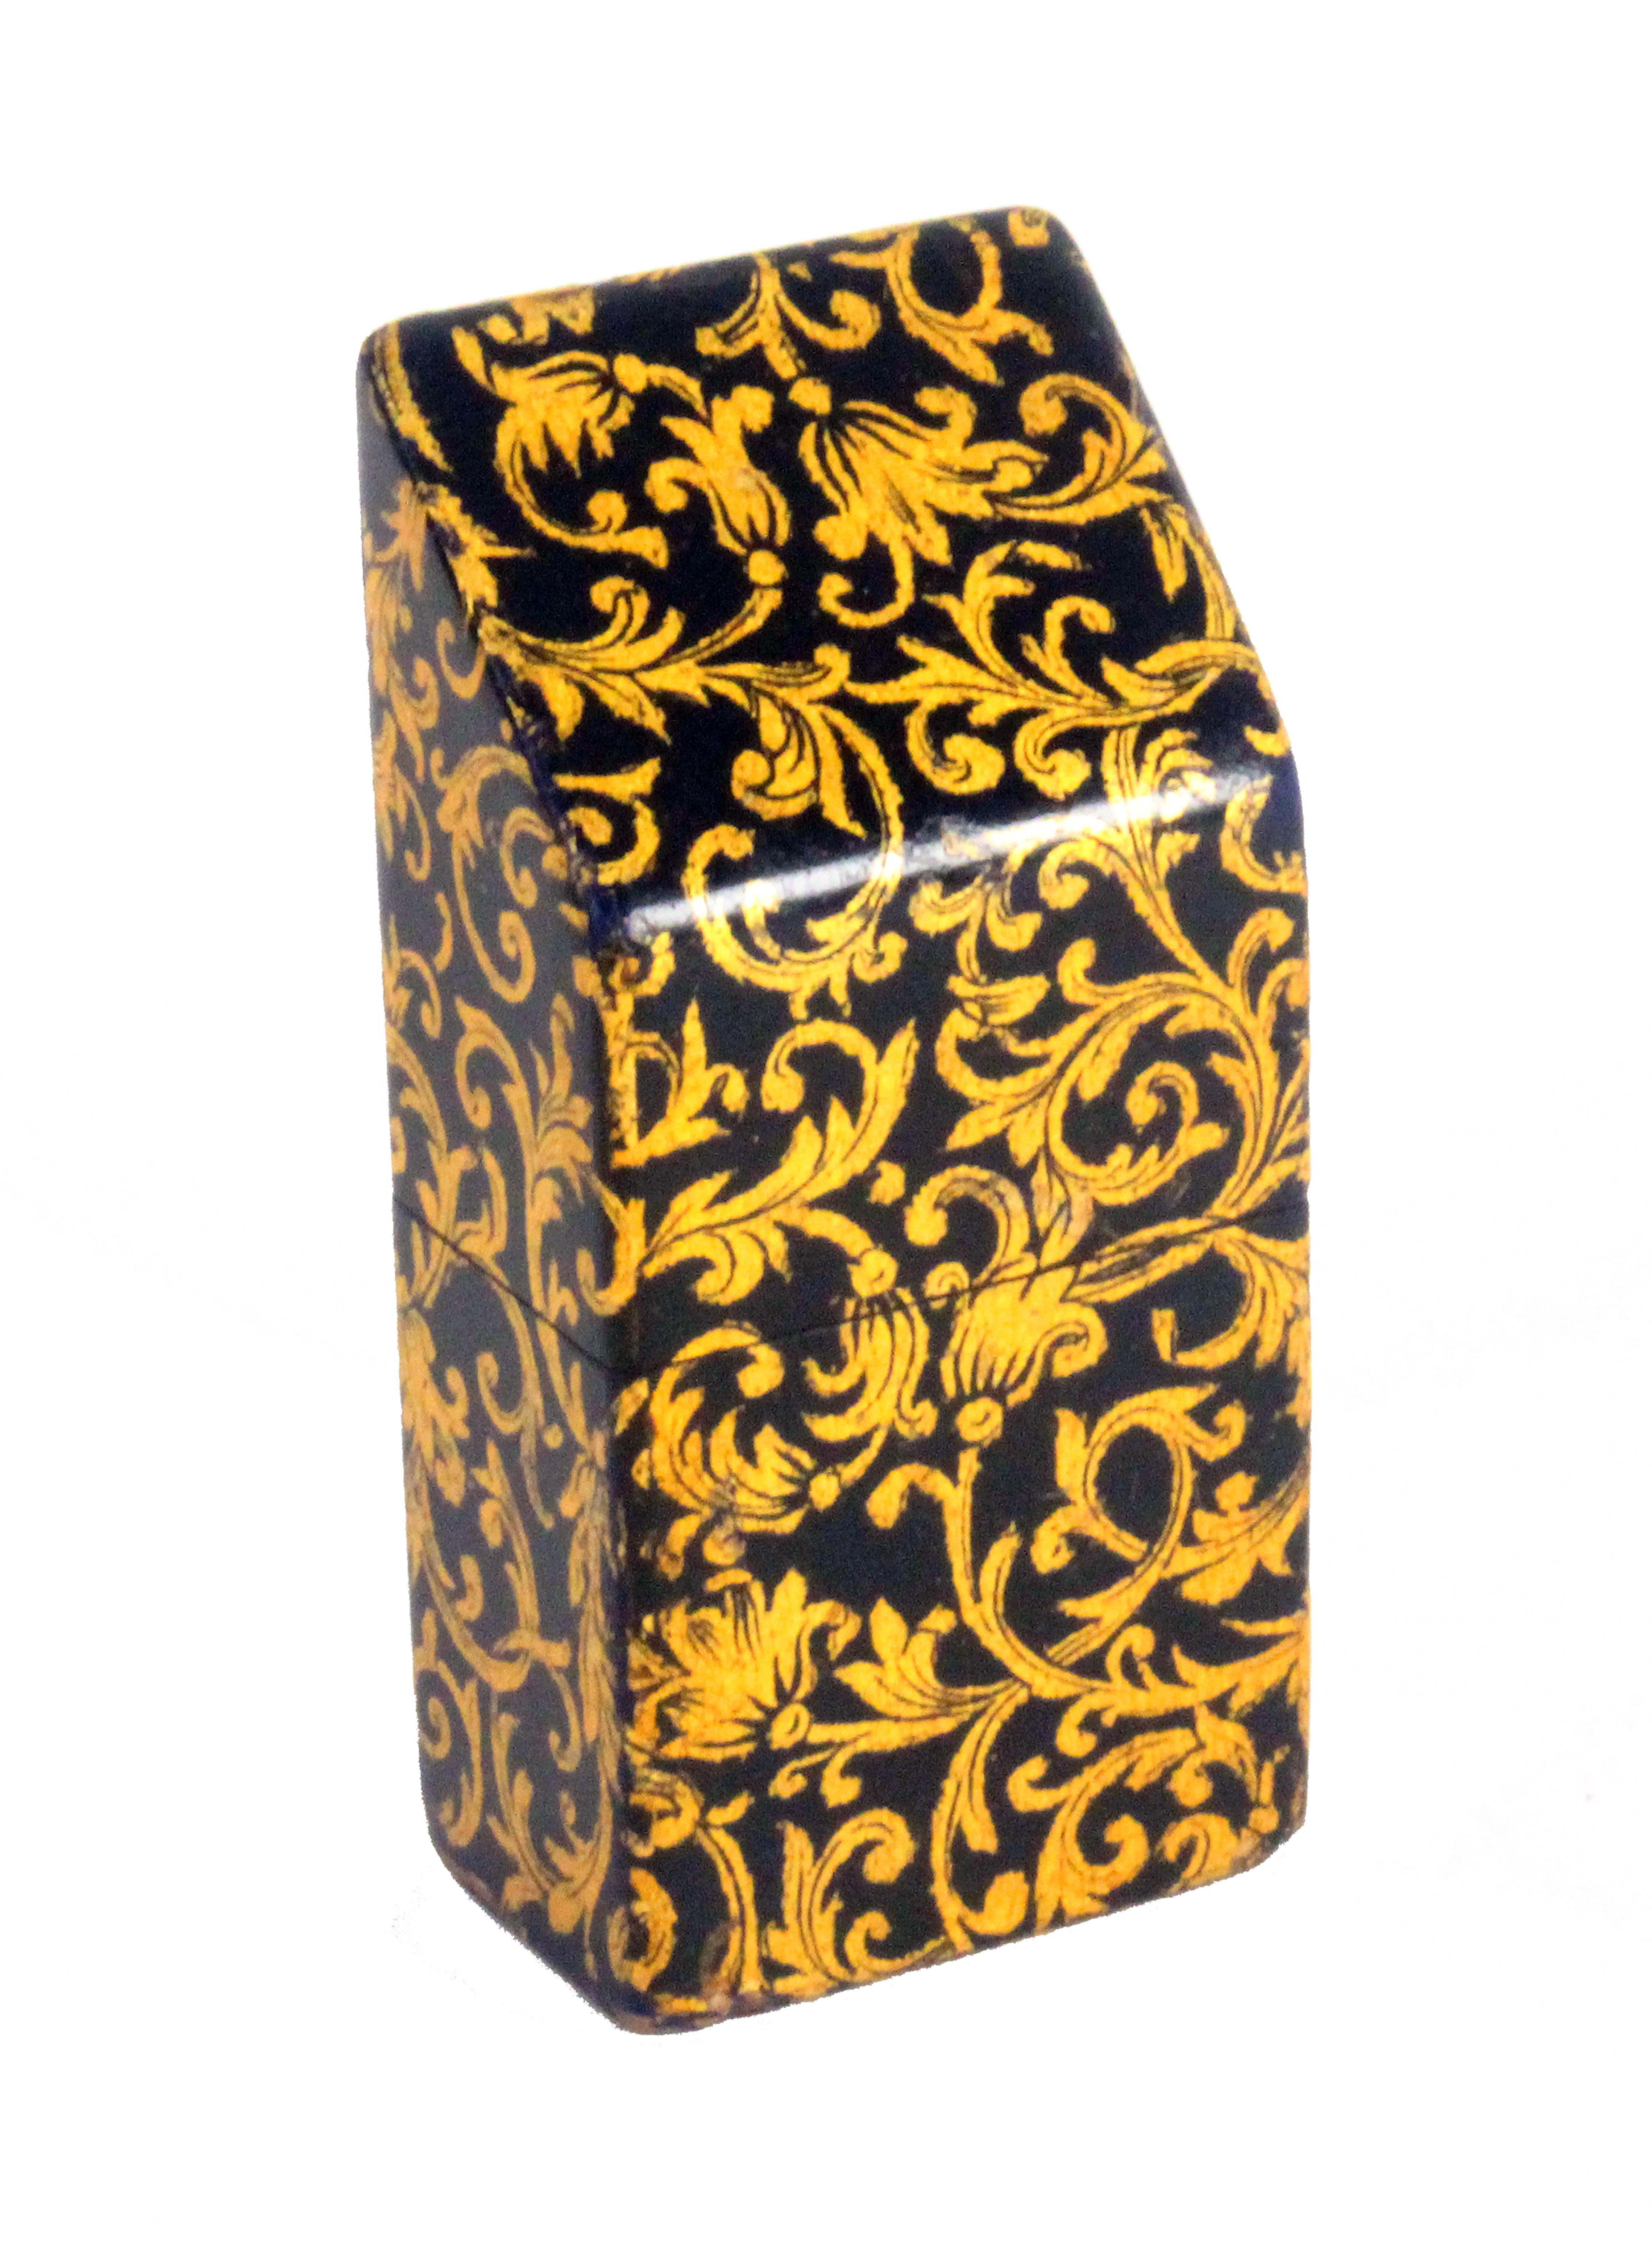 A fine Mauchline ware slant top needle packet box, decorated all over in gilt on a black ground with